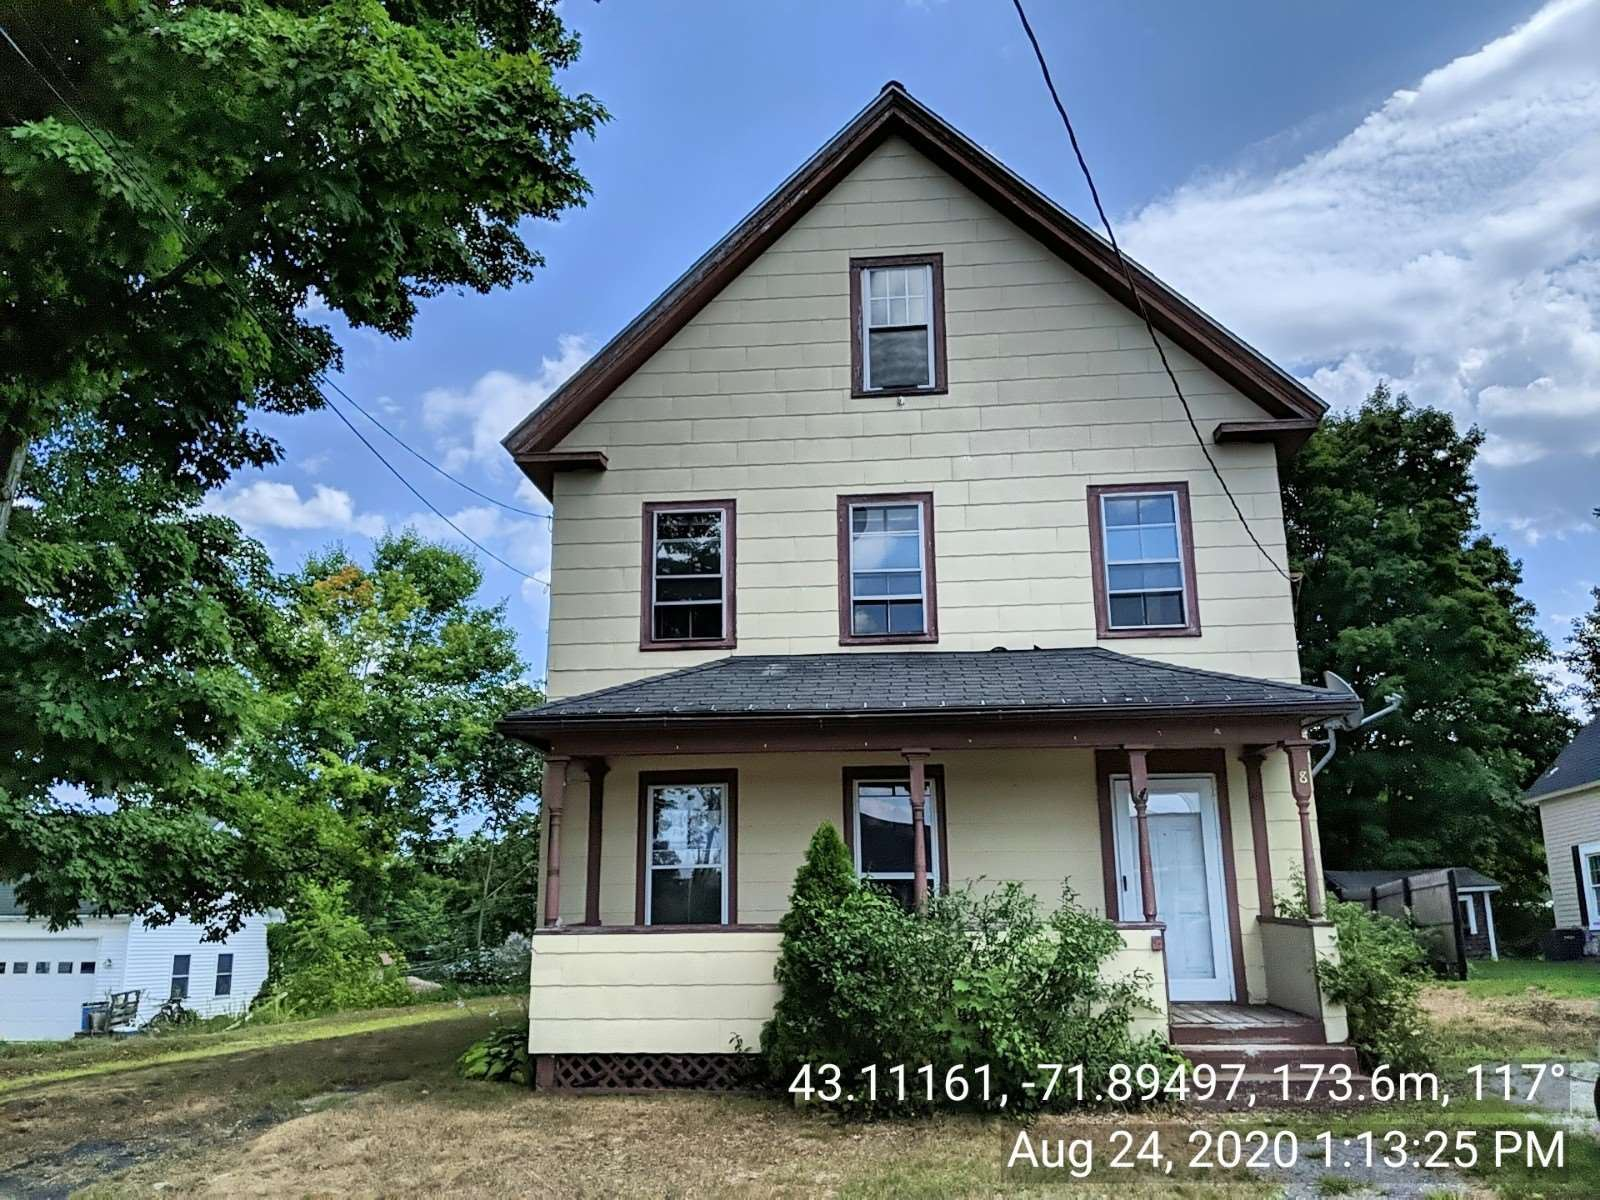 8 High Street, Hillsborough, NH 03244 - MLS#: 4816847